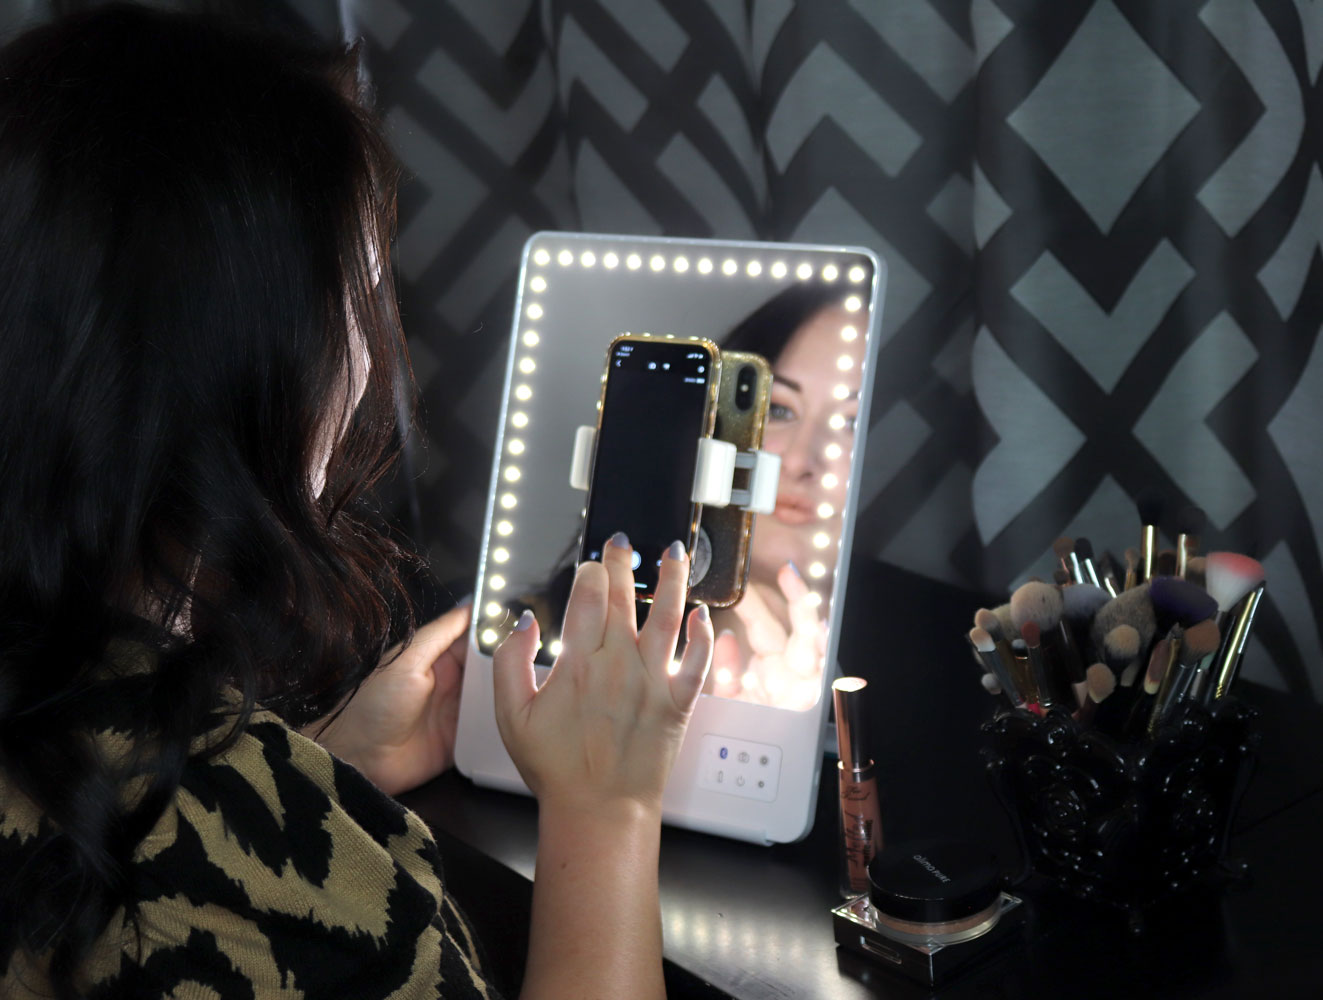 Glamcor Riki Skinny Lighted Selfie BlueTooth Mirror Review